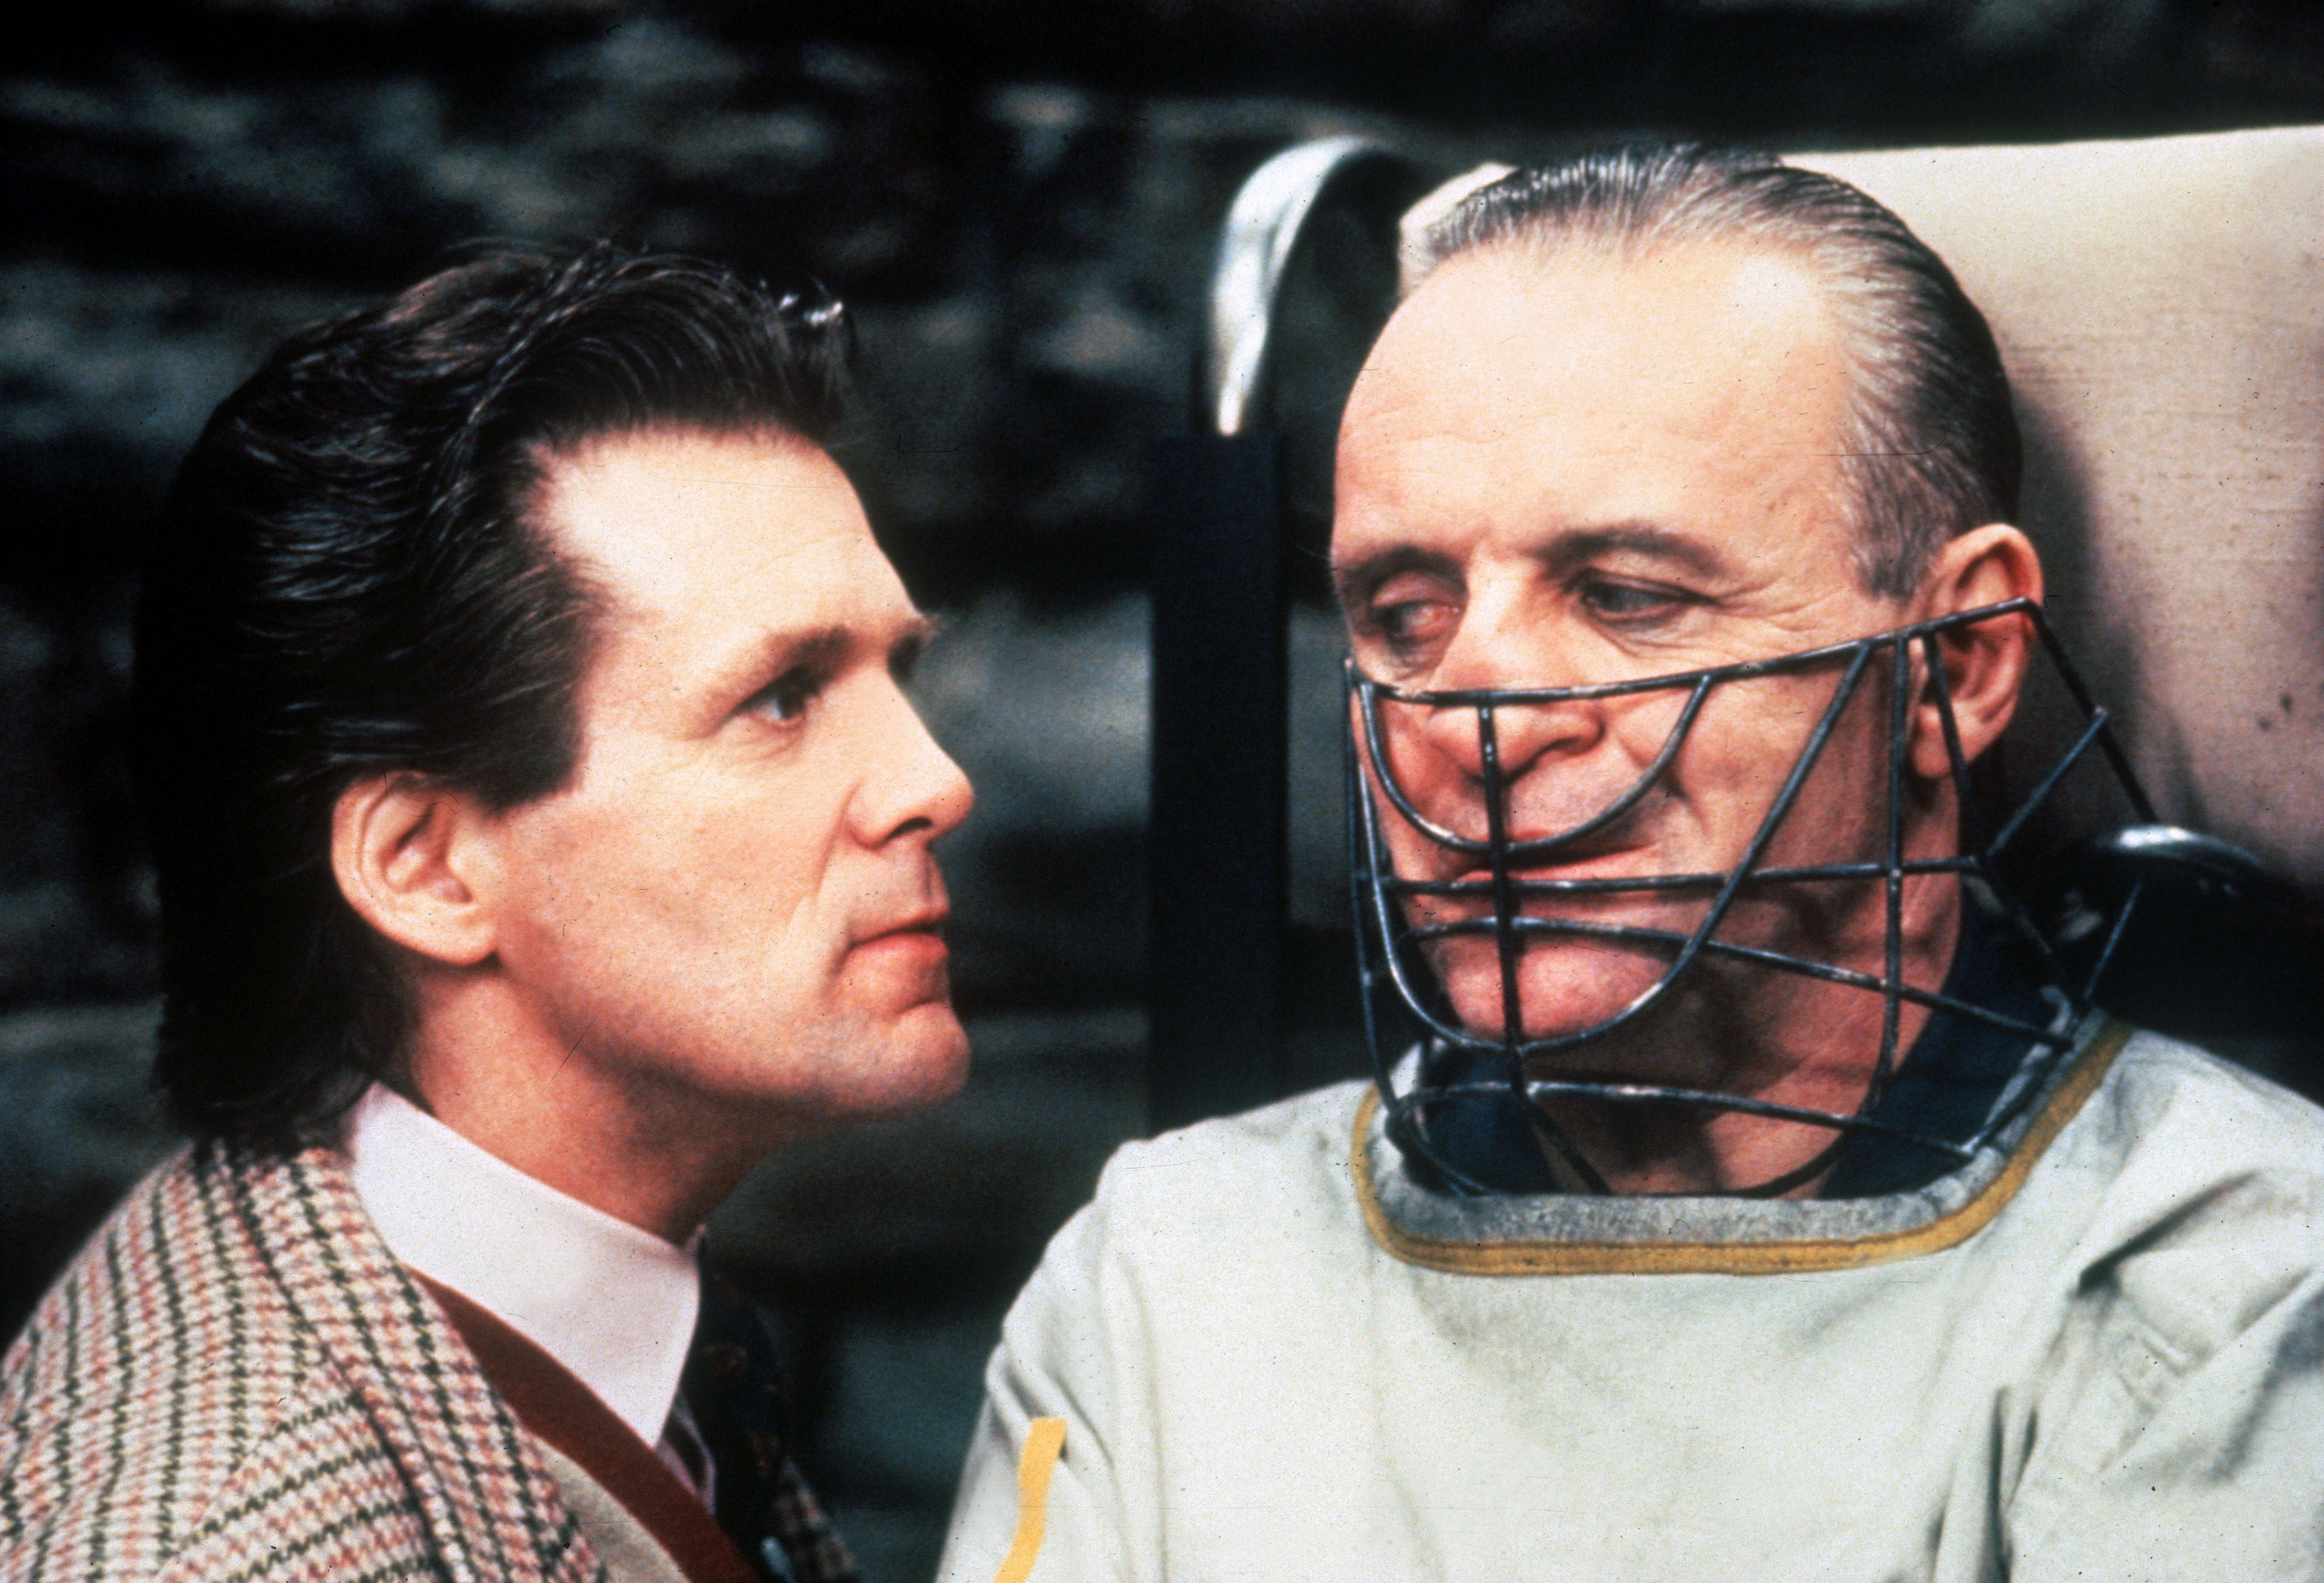 THE SILENCE OF THE LAMBS [US 1991]  ANTHONY HEALD, ANTHONY HOPKINS as  Dr. Hannibal Lecter       Date: 1991 (Mary Evans Pictu